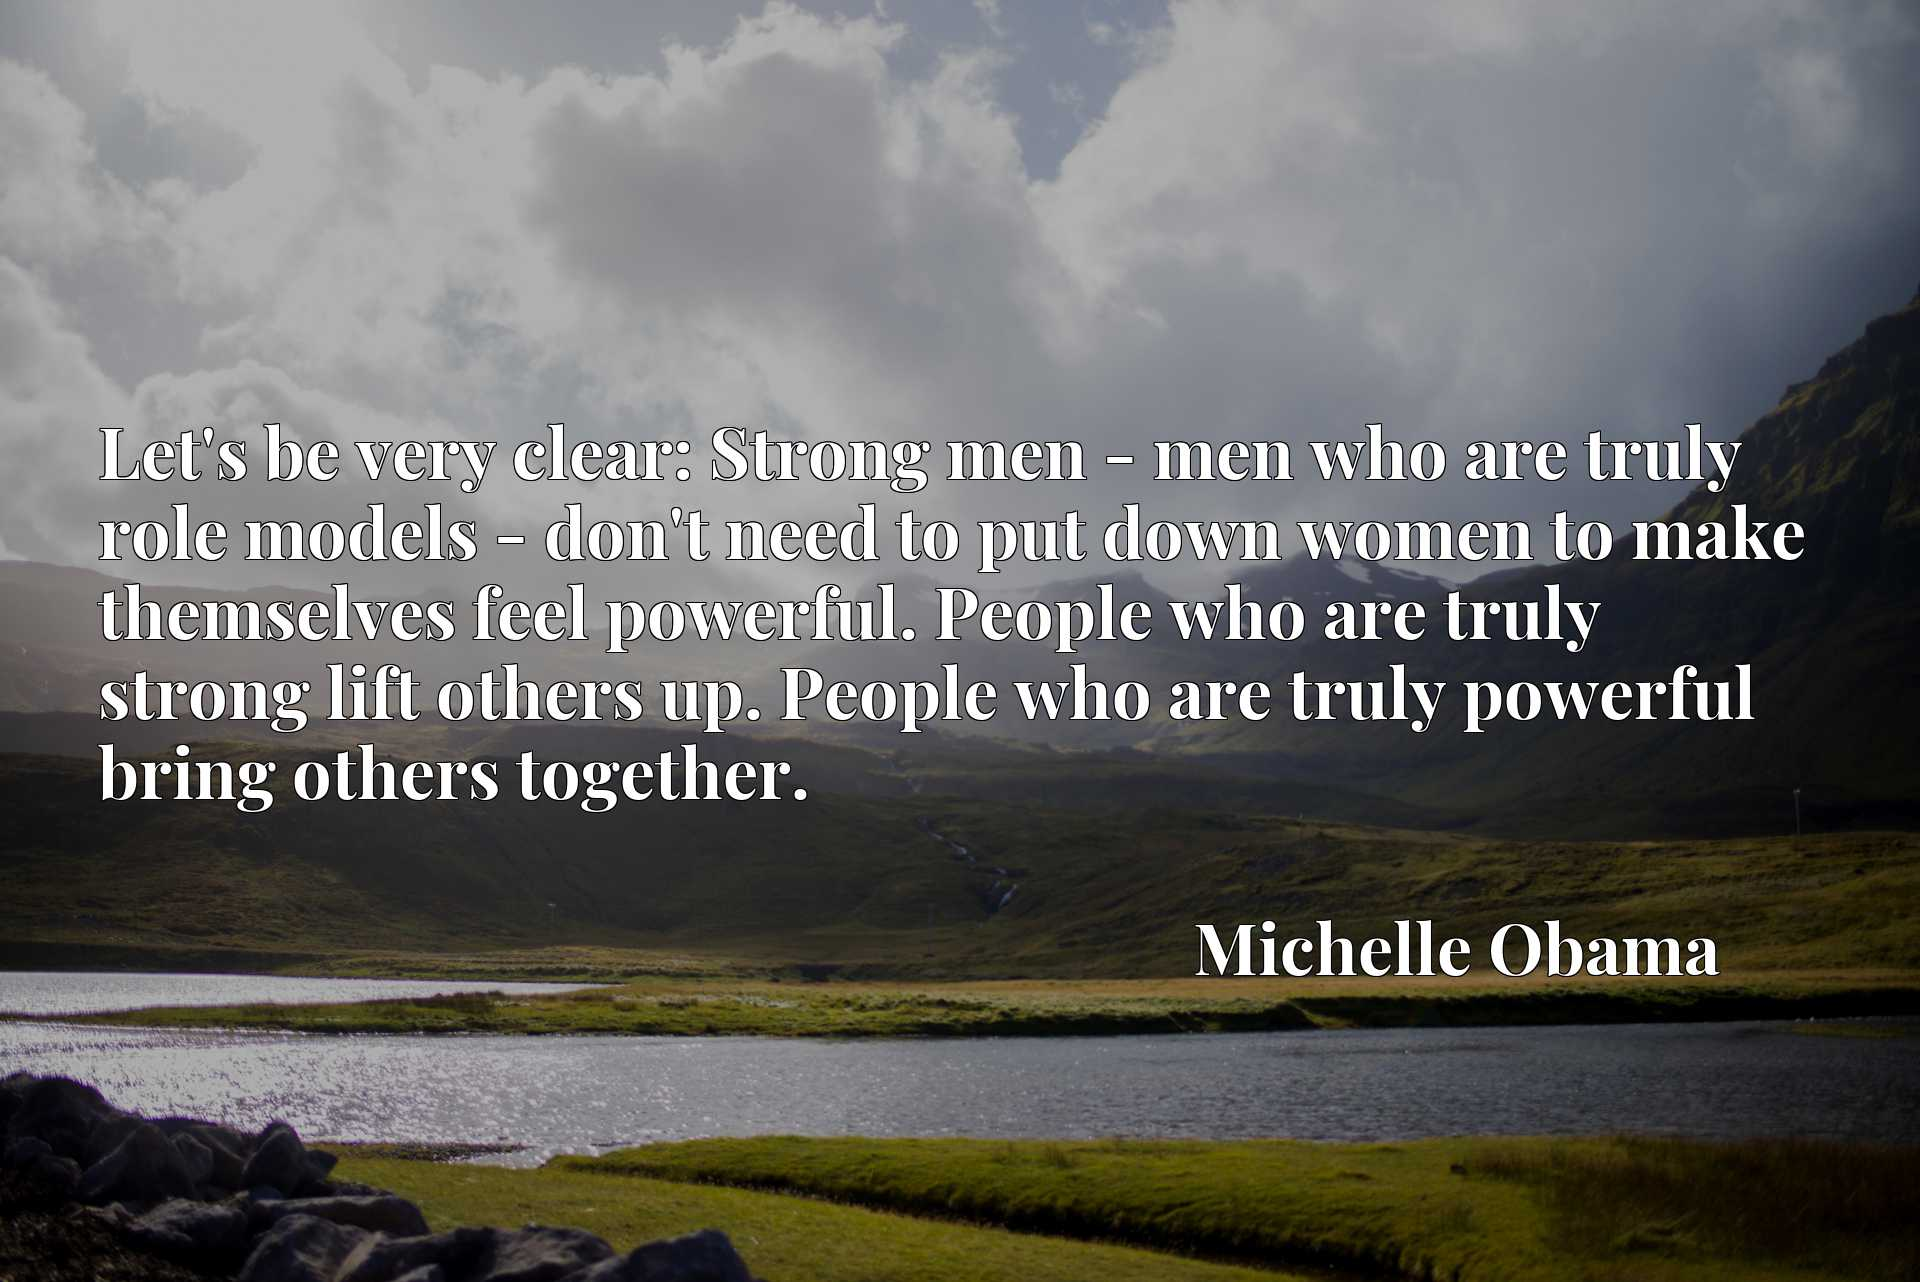 Let's be very clear: Strong men - men who are truly role models - don't need to put down women to make themselves feel powerful. People who are truly strong lift others up. People who are truly powerful bring others together.